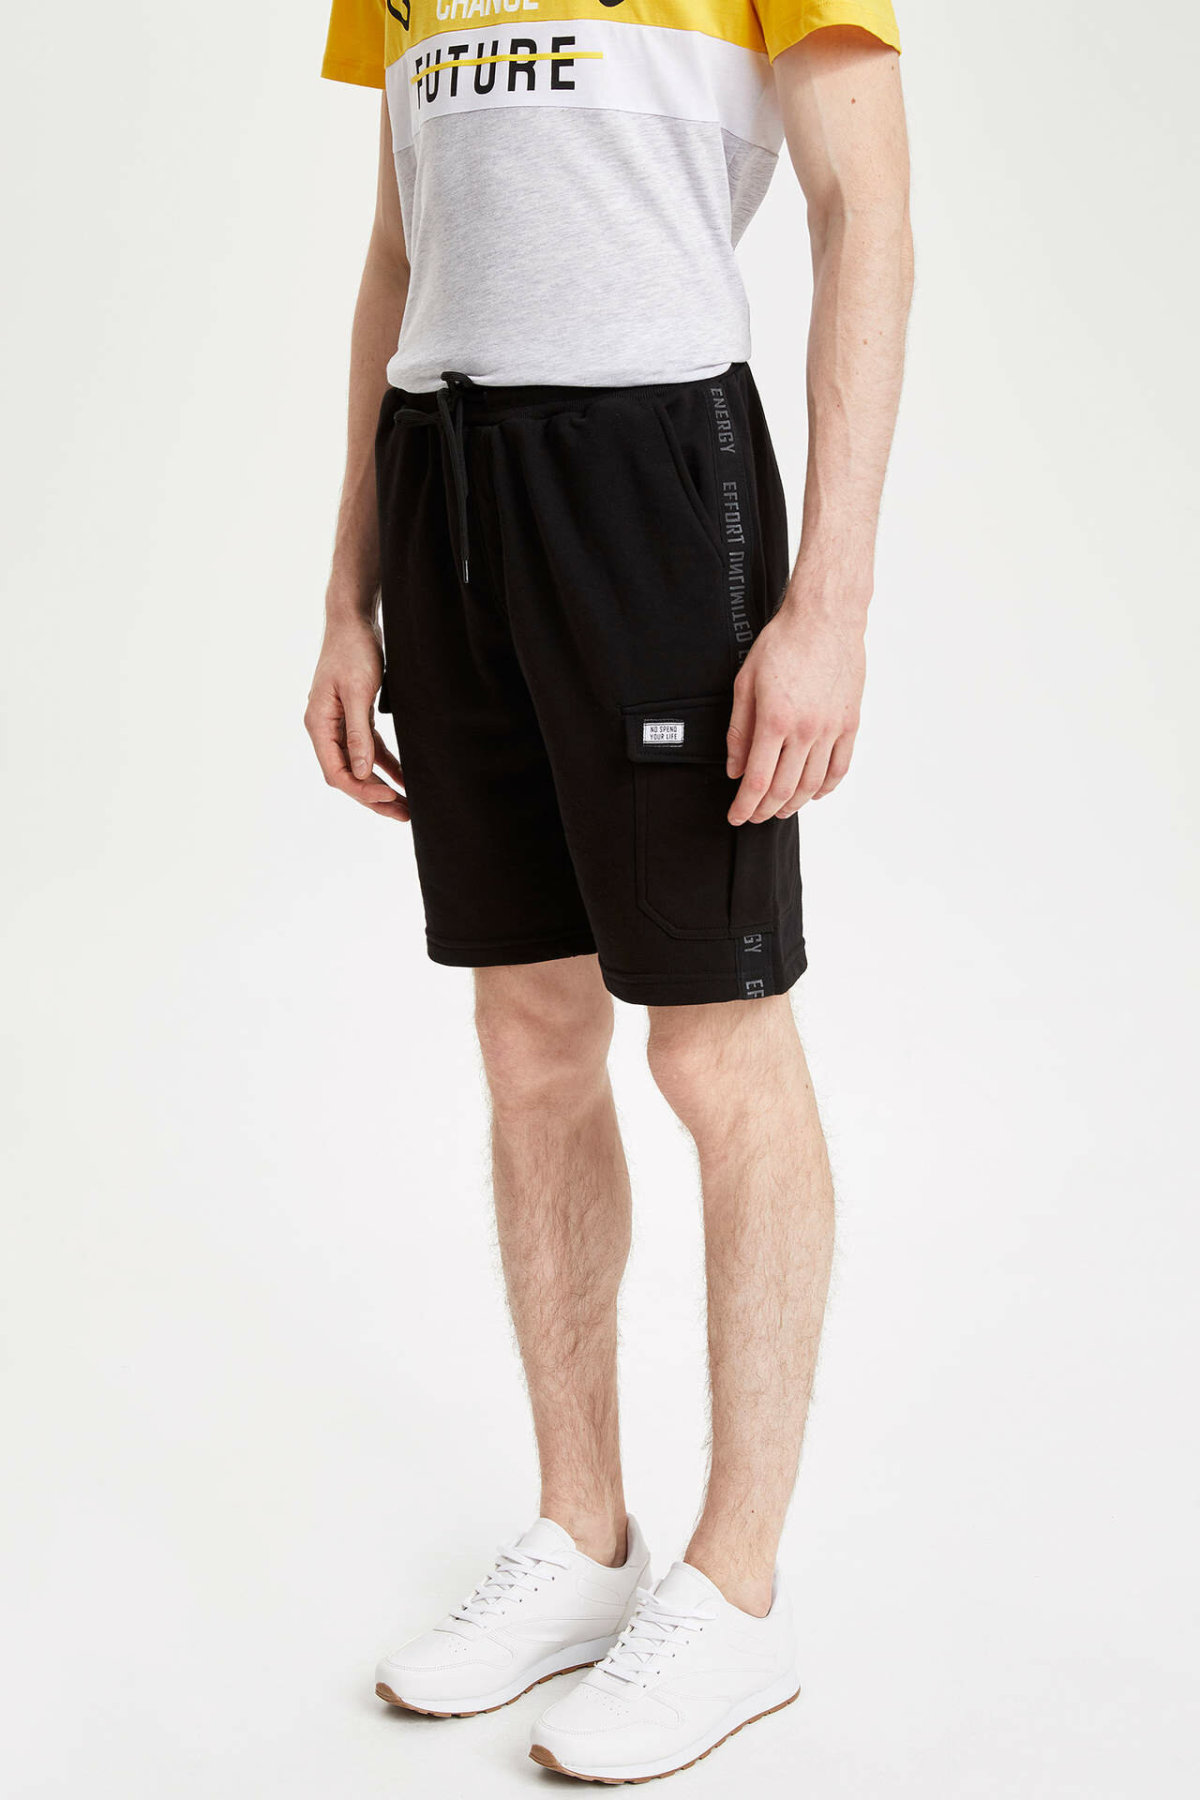 DeFacto Men Summer Casual Black Shorts Men Loose Lace-up Short Bottoms Male Pocket Decors Shorts-K7169AZ19SM